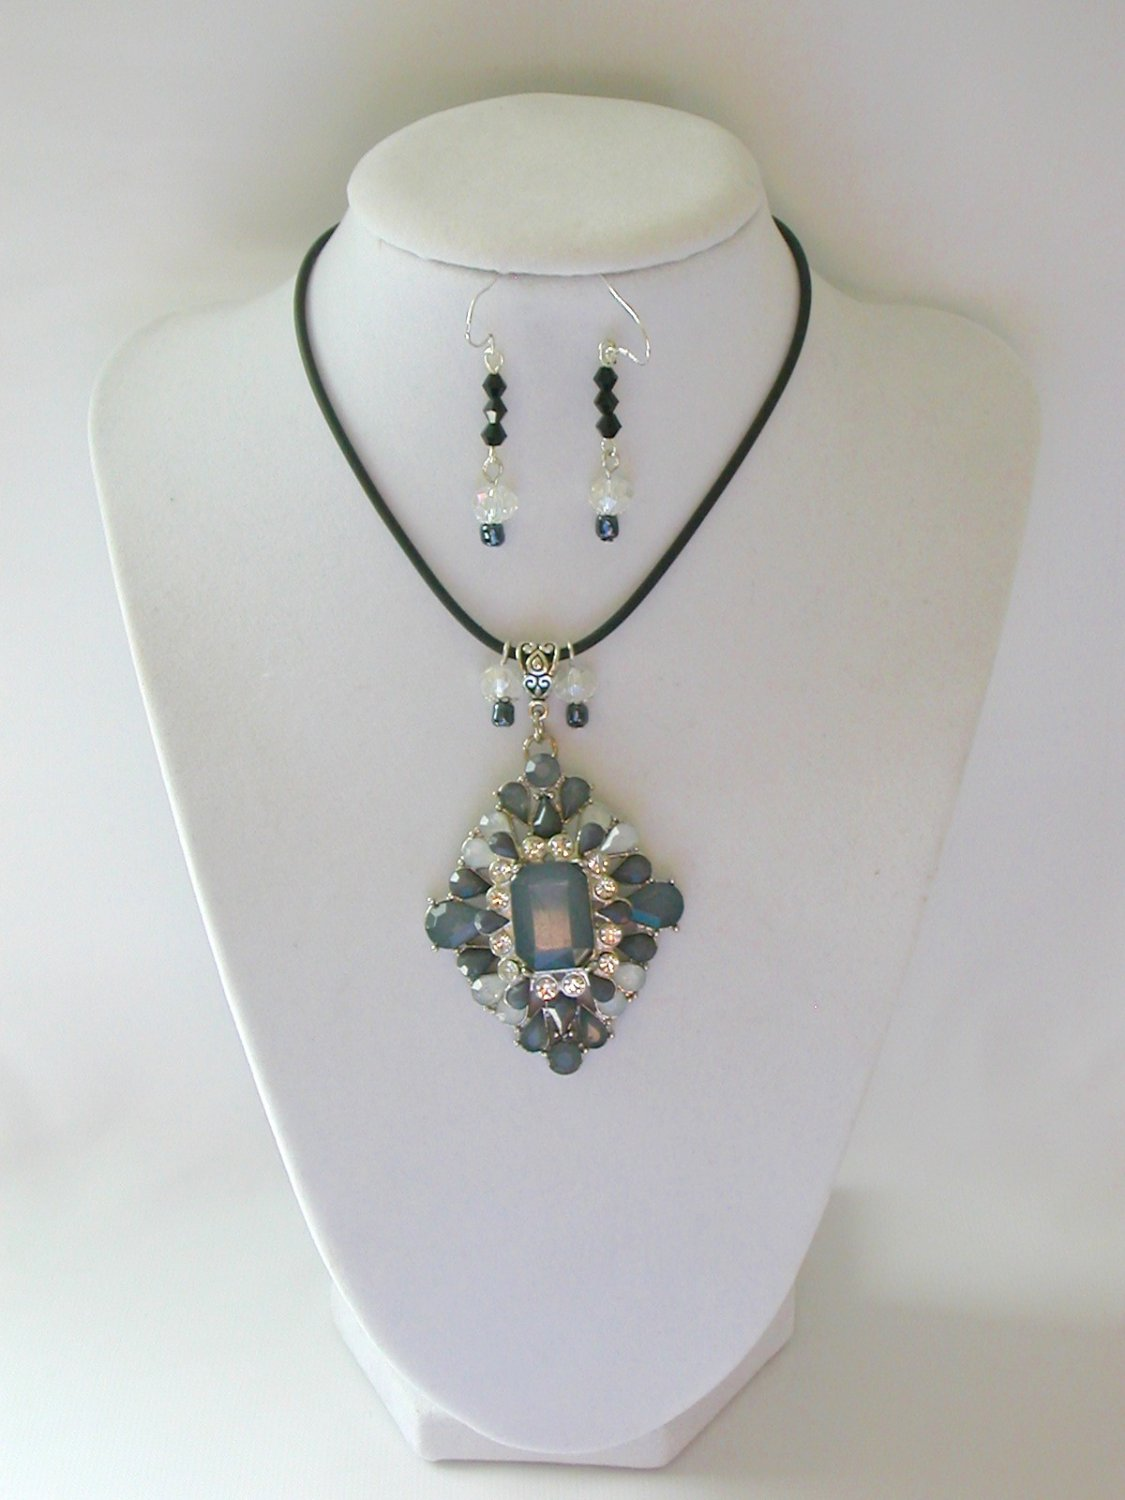 Grey rhinestone statement pedant necklace earrings set